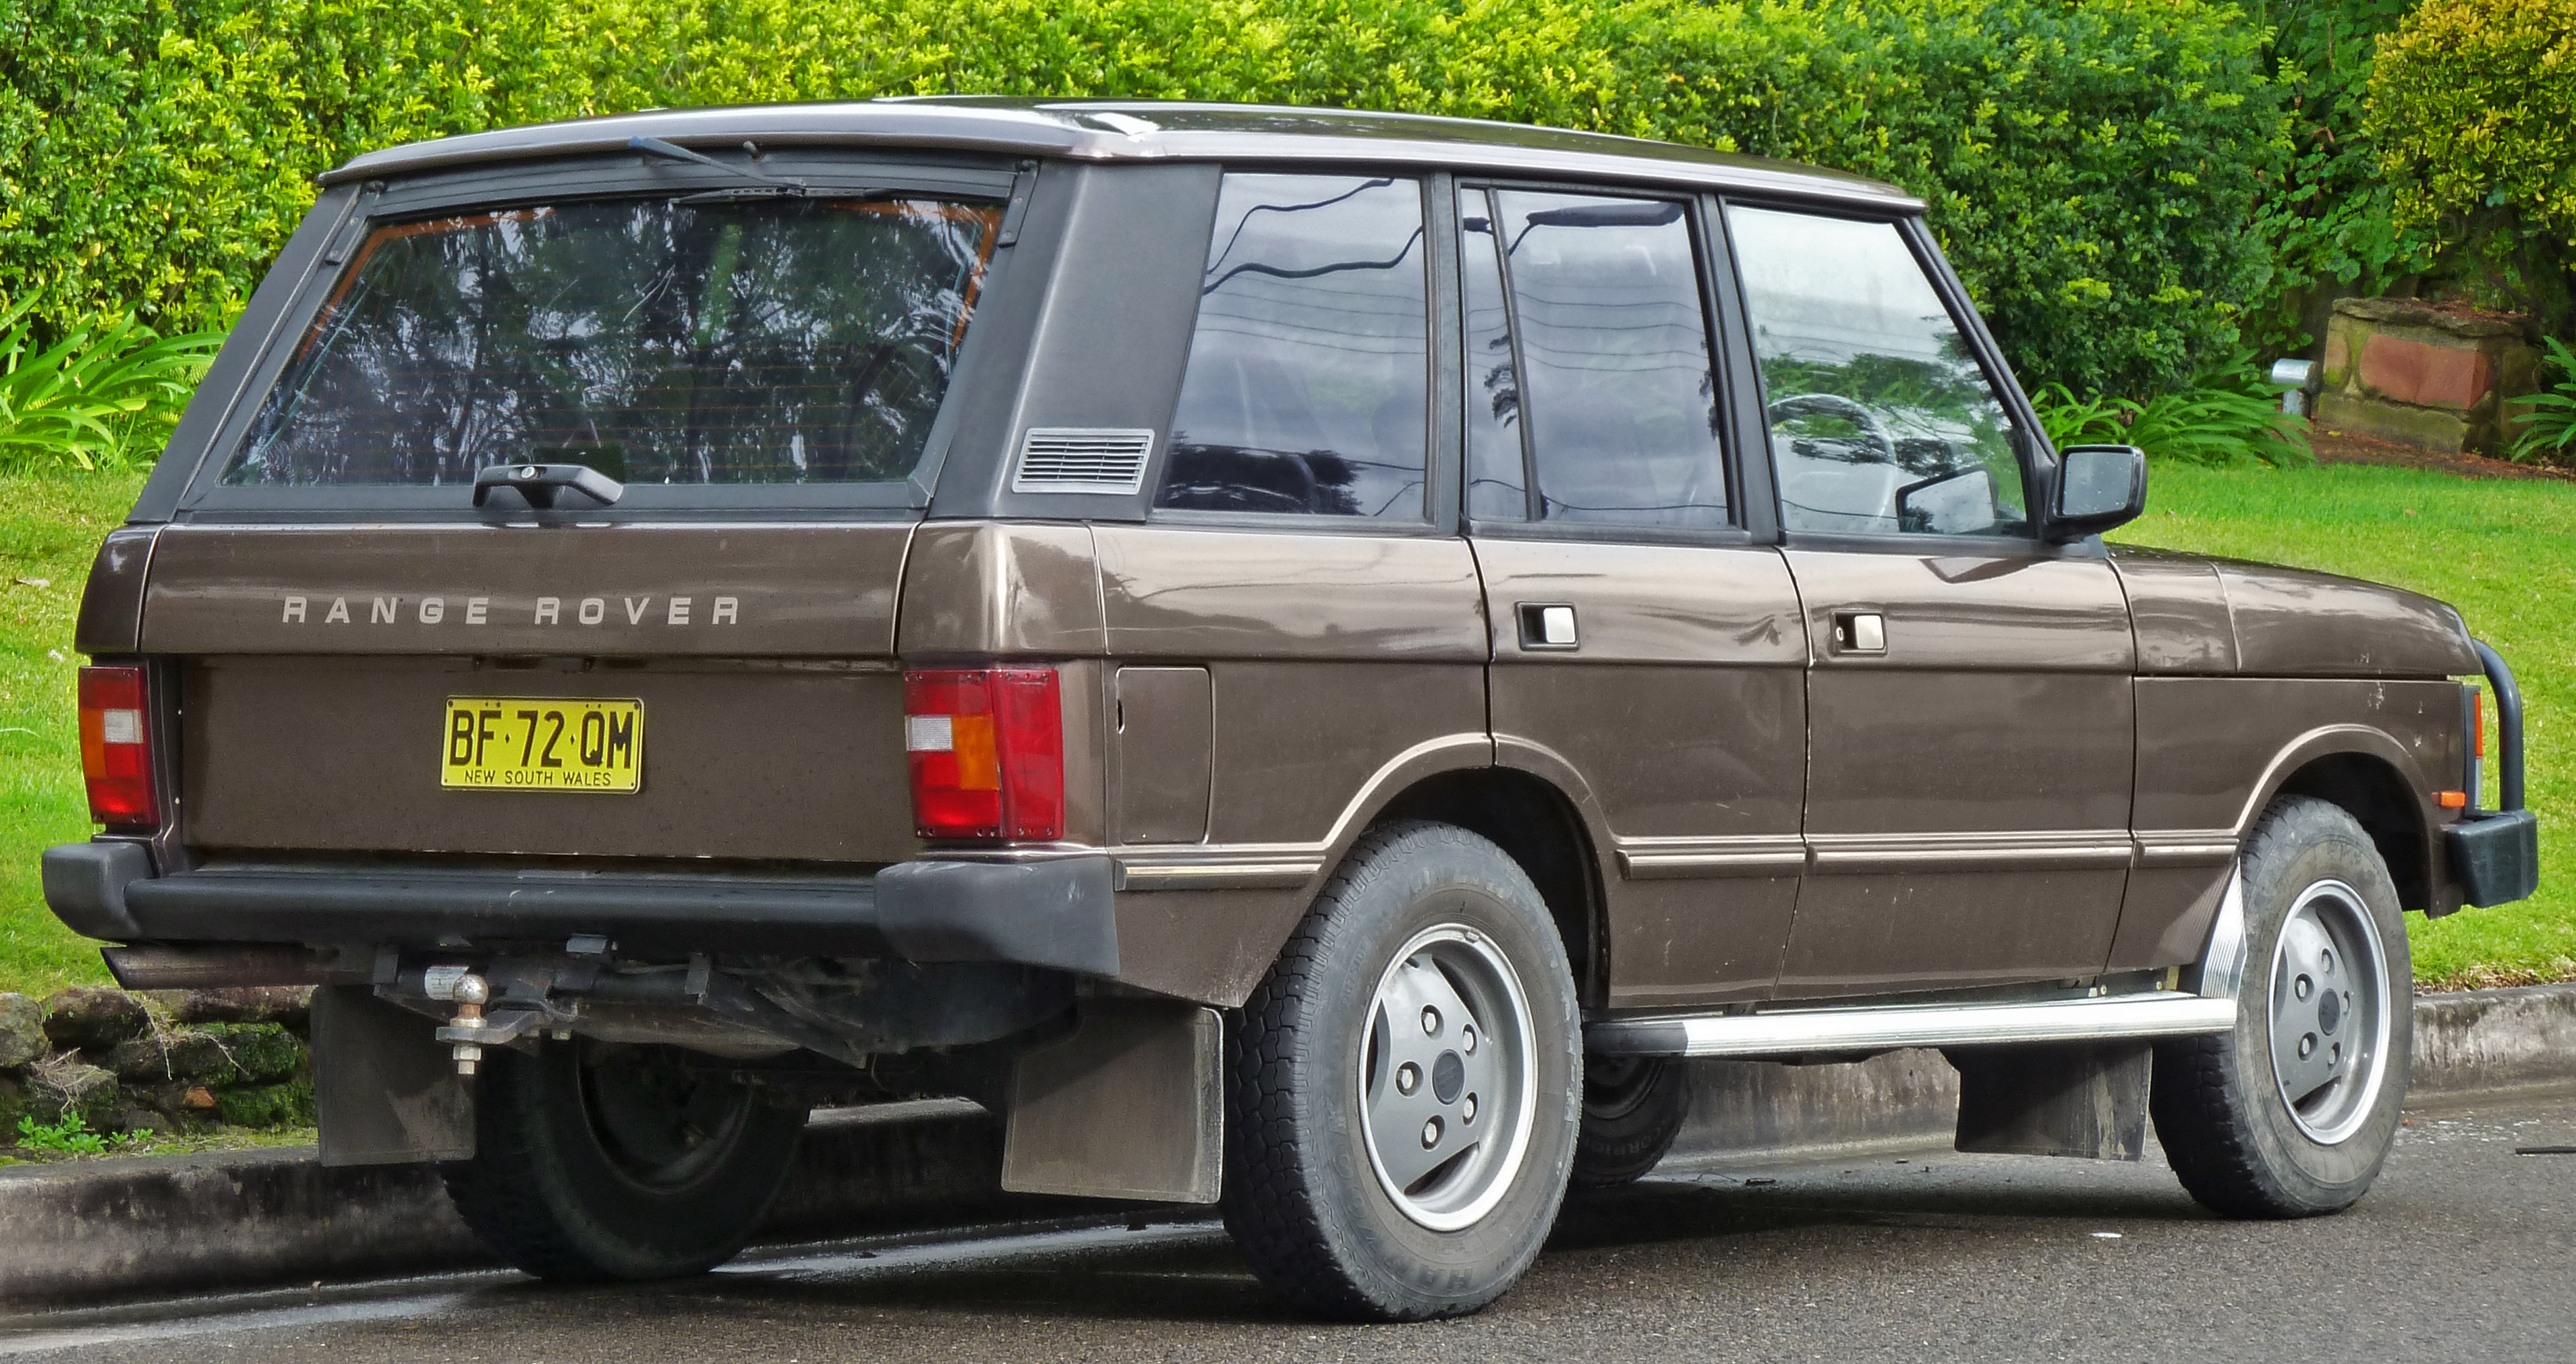 bad img for hse classifieds private sale forums forum landrover trade rover land engine